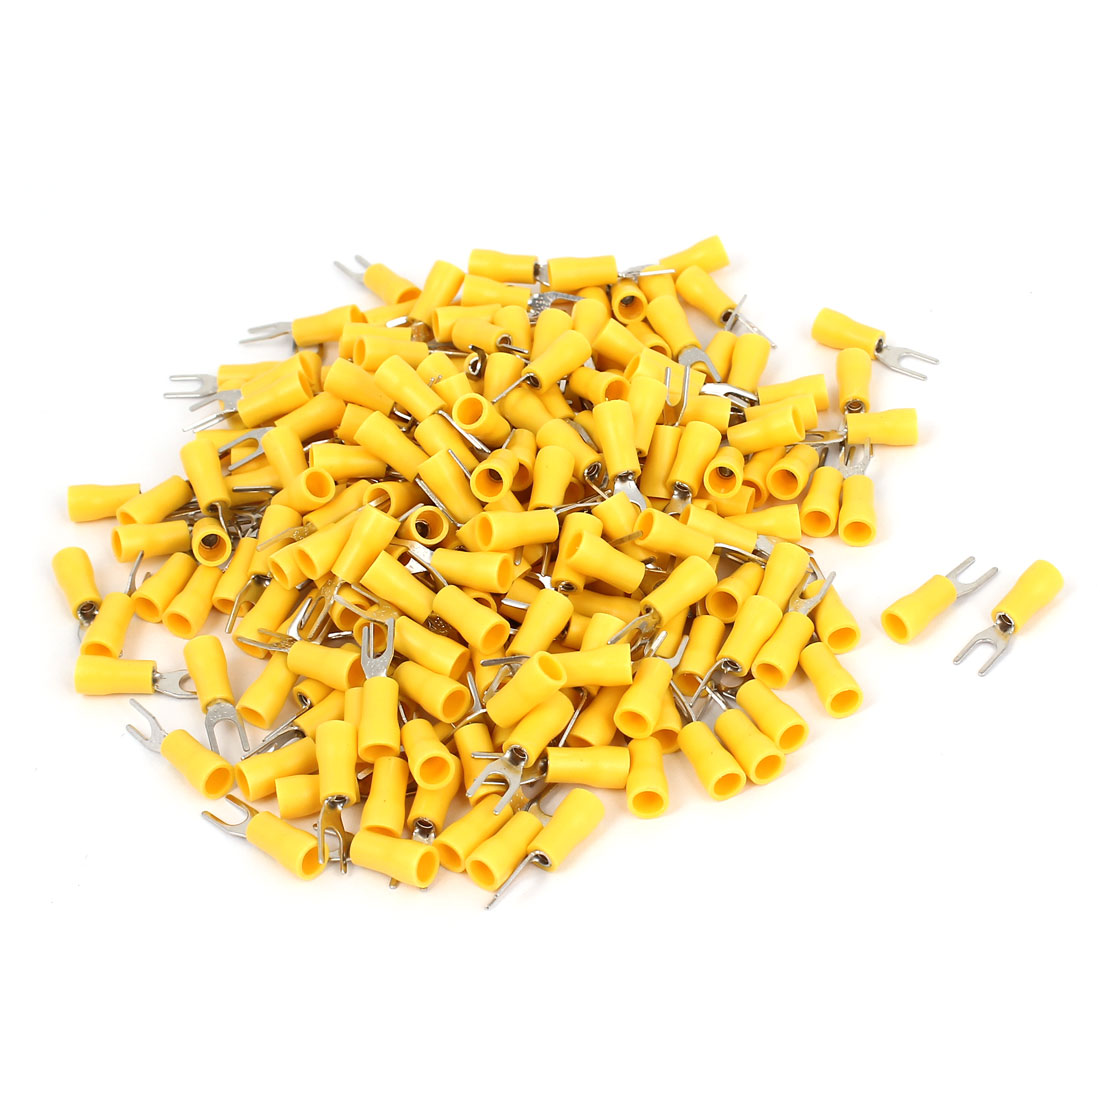 220 Pcs AWG22-16 SV1.25-3 Wire Connector Insulated Fork Terminals Yellow